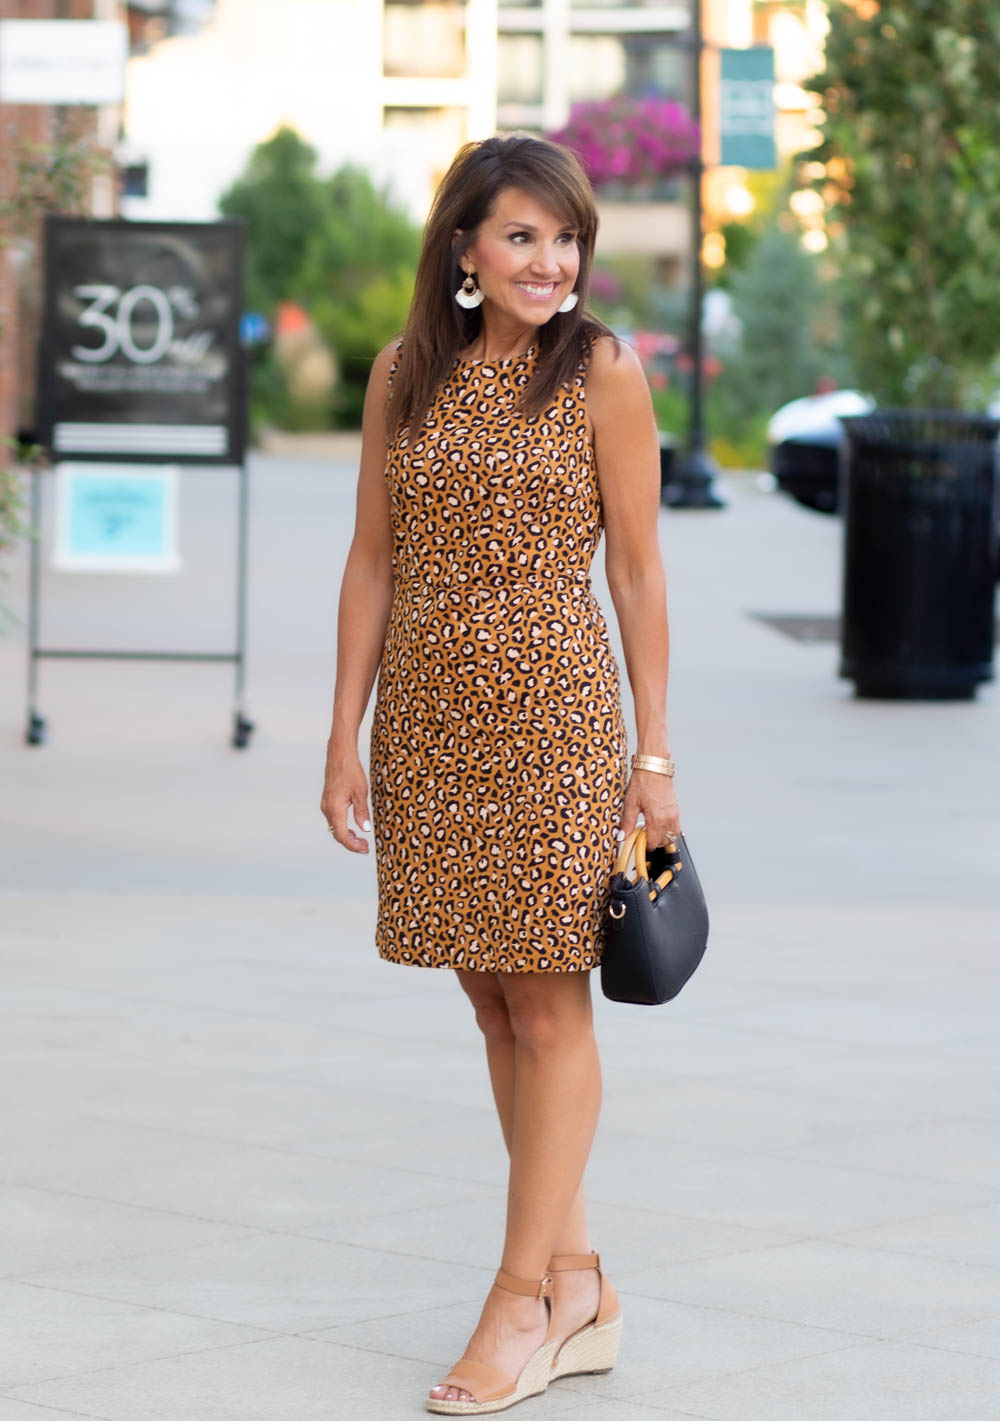 Cheetah Print Dress: Wear Now and Later